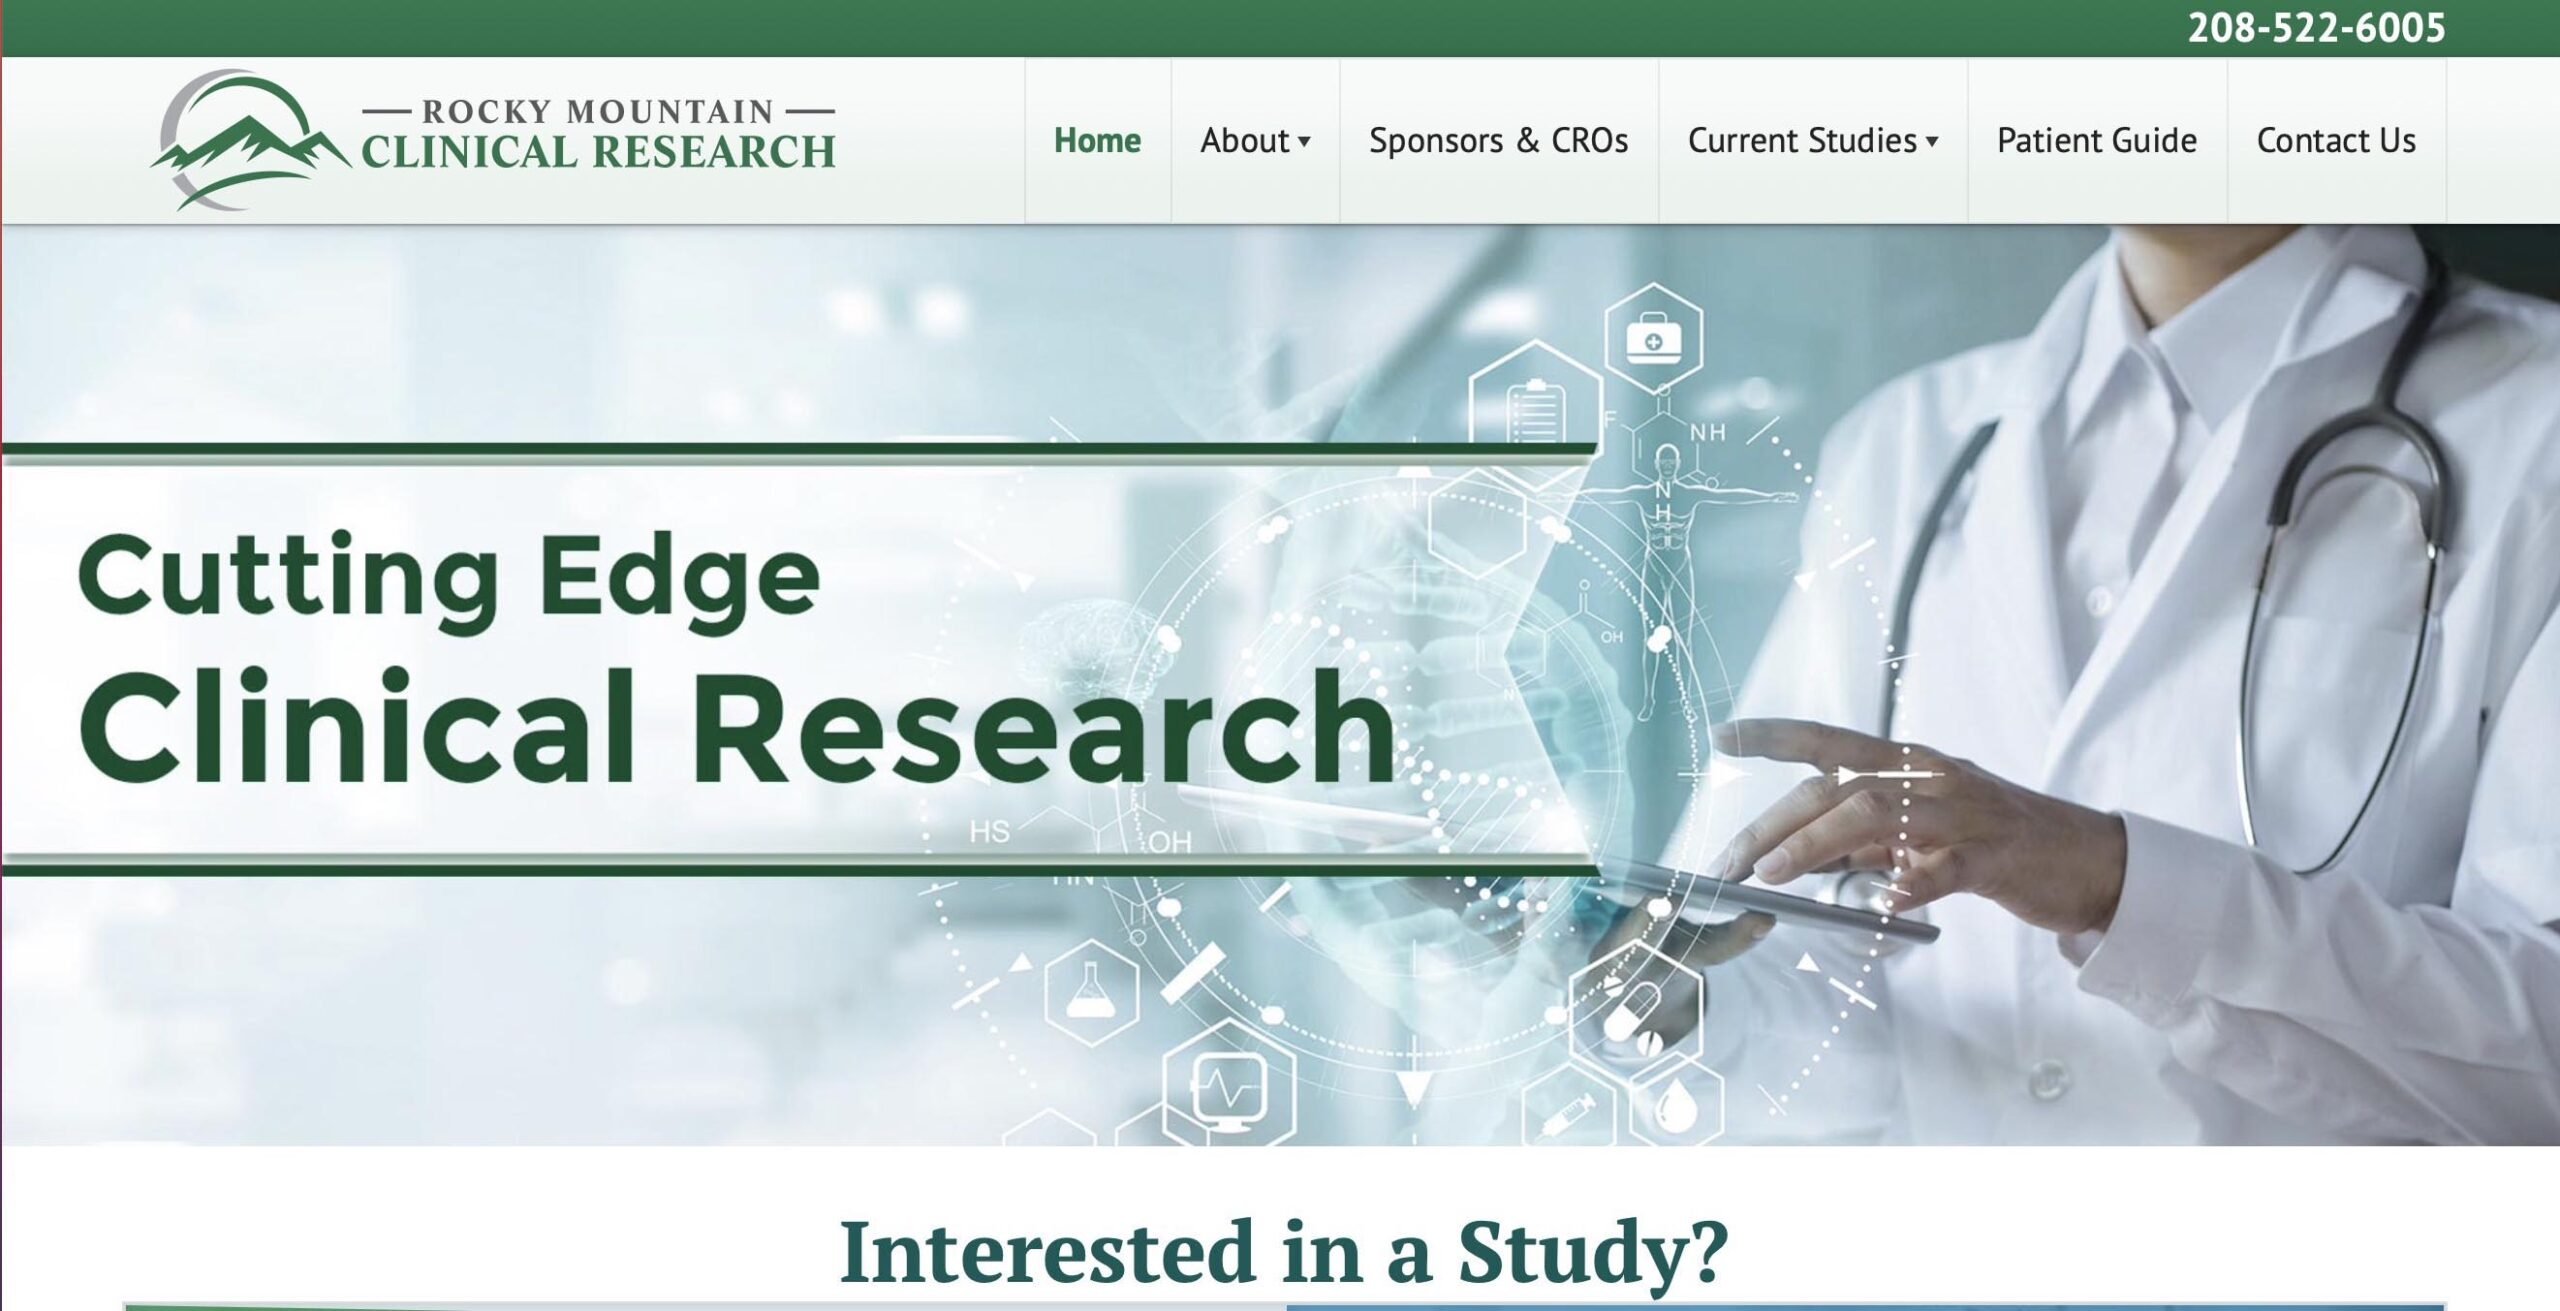 Marketing consultant - website developer project for Rocky Mountain Clinical Research